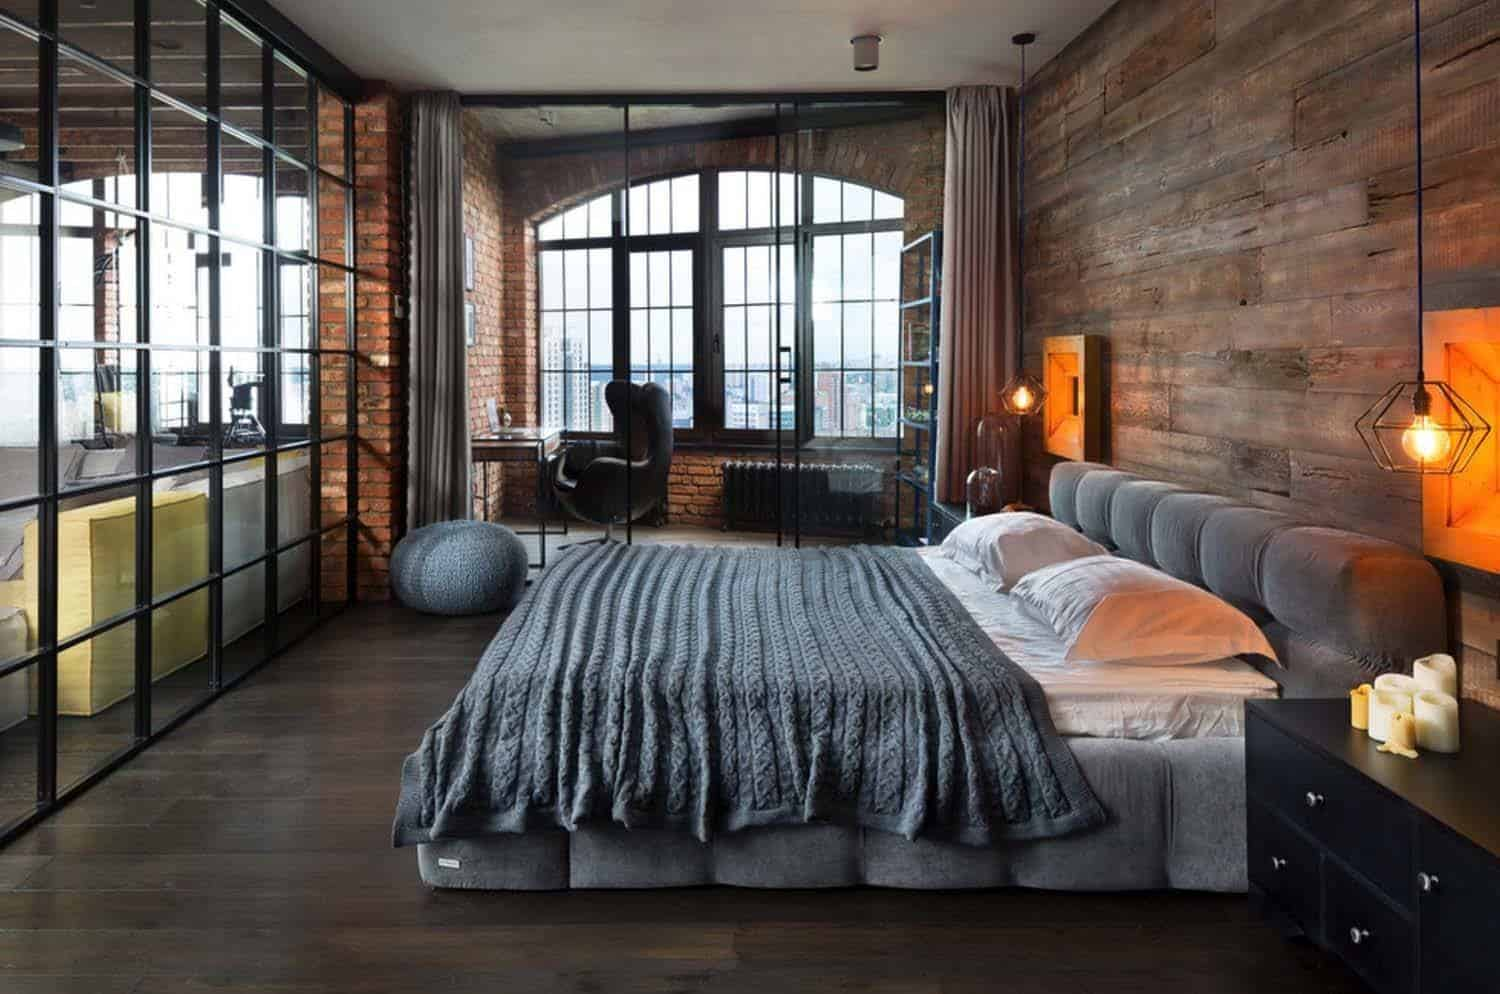 Charmant Industrial Style Bedroom Design Ideas 02 1 Kindesign